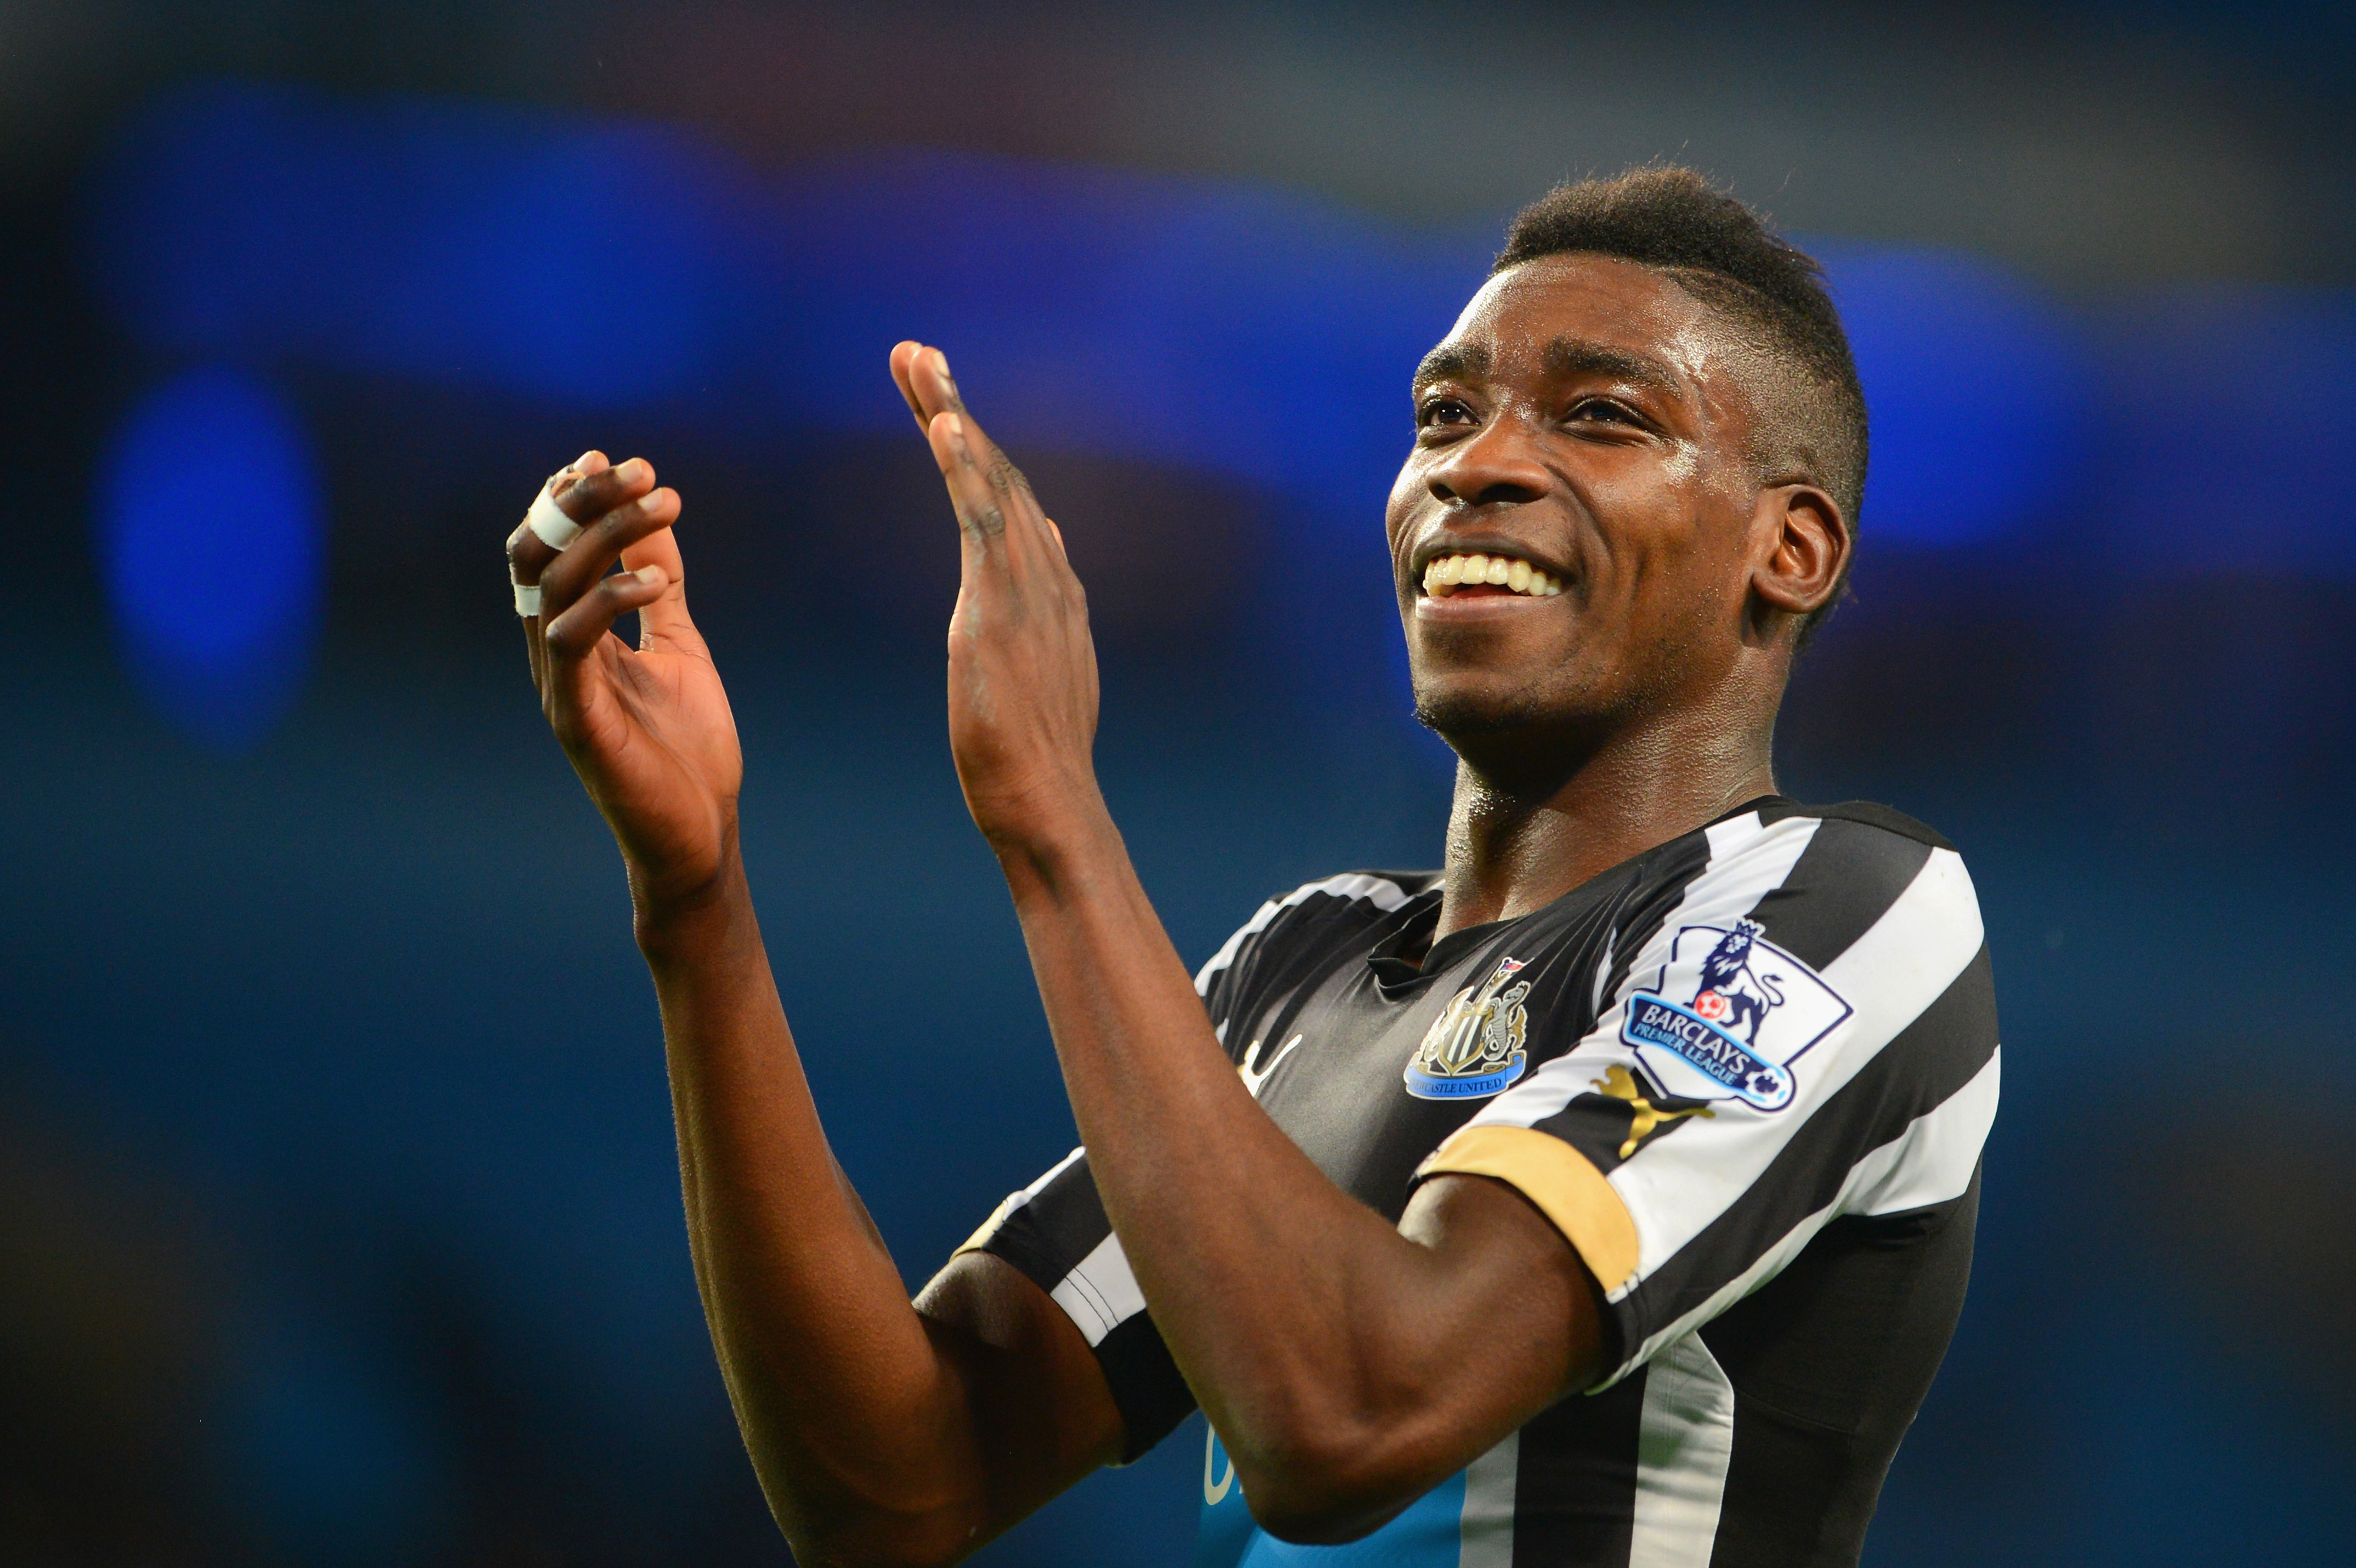 Newcastle United vs. Liverpool live stream: How to watch the EPL online